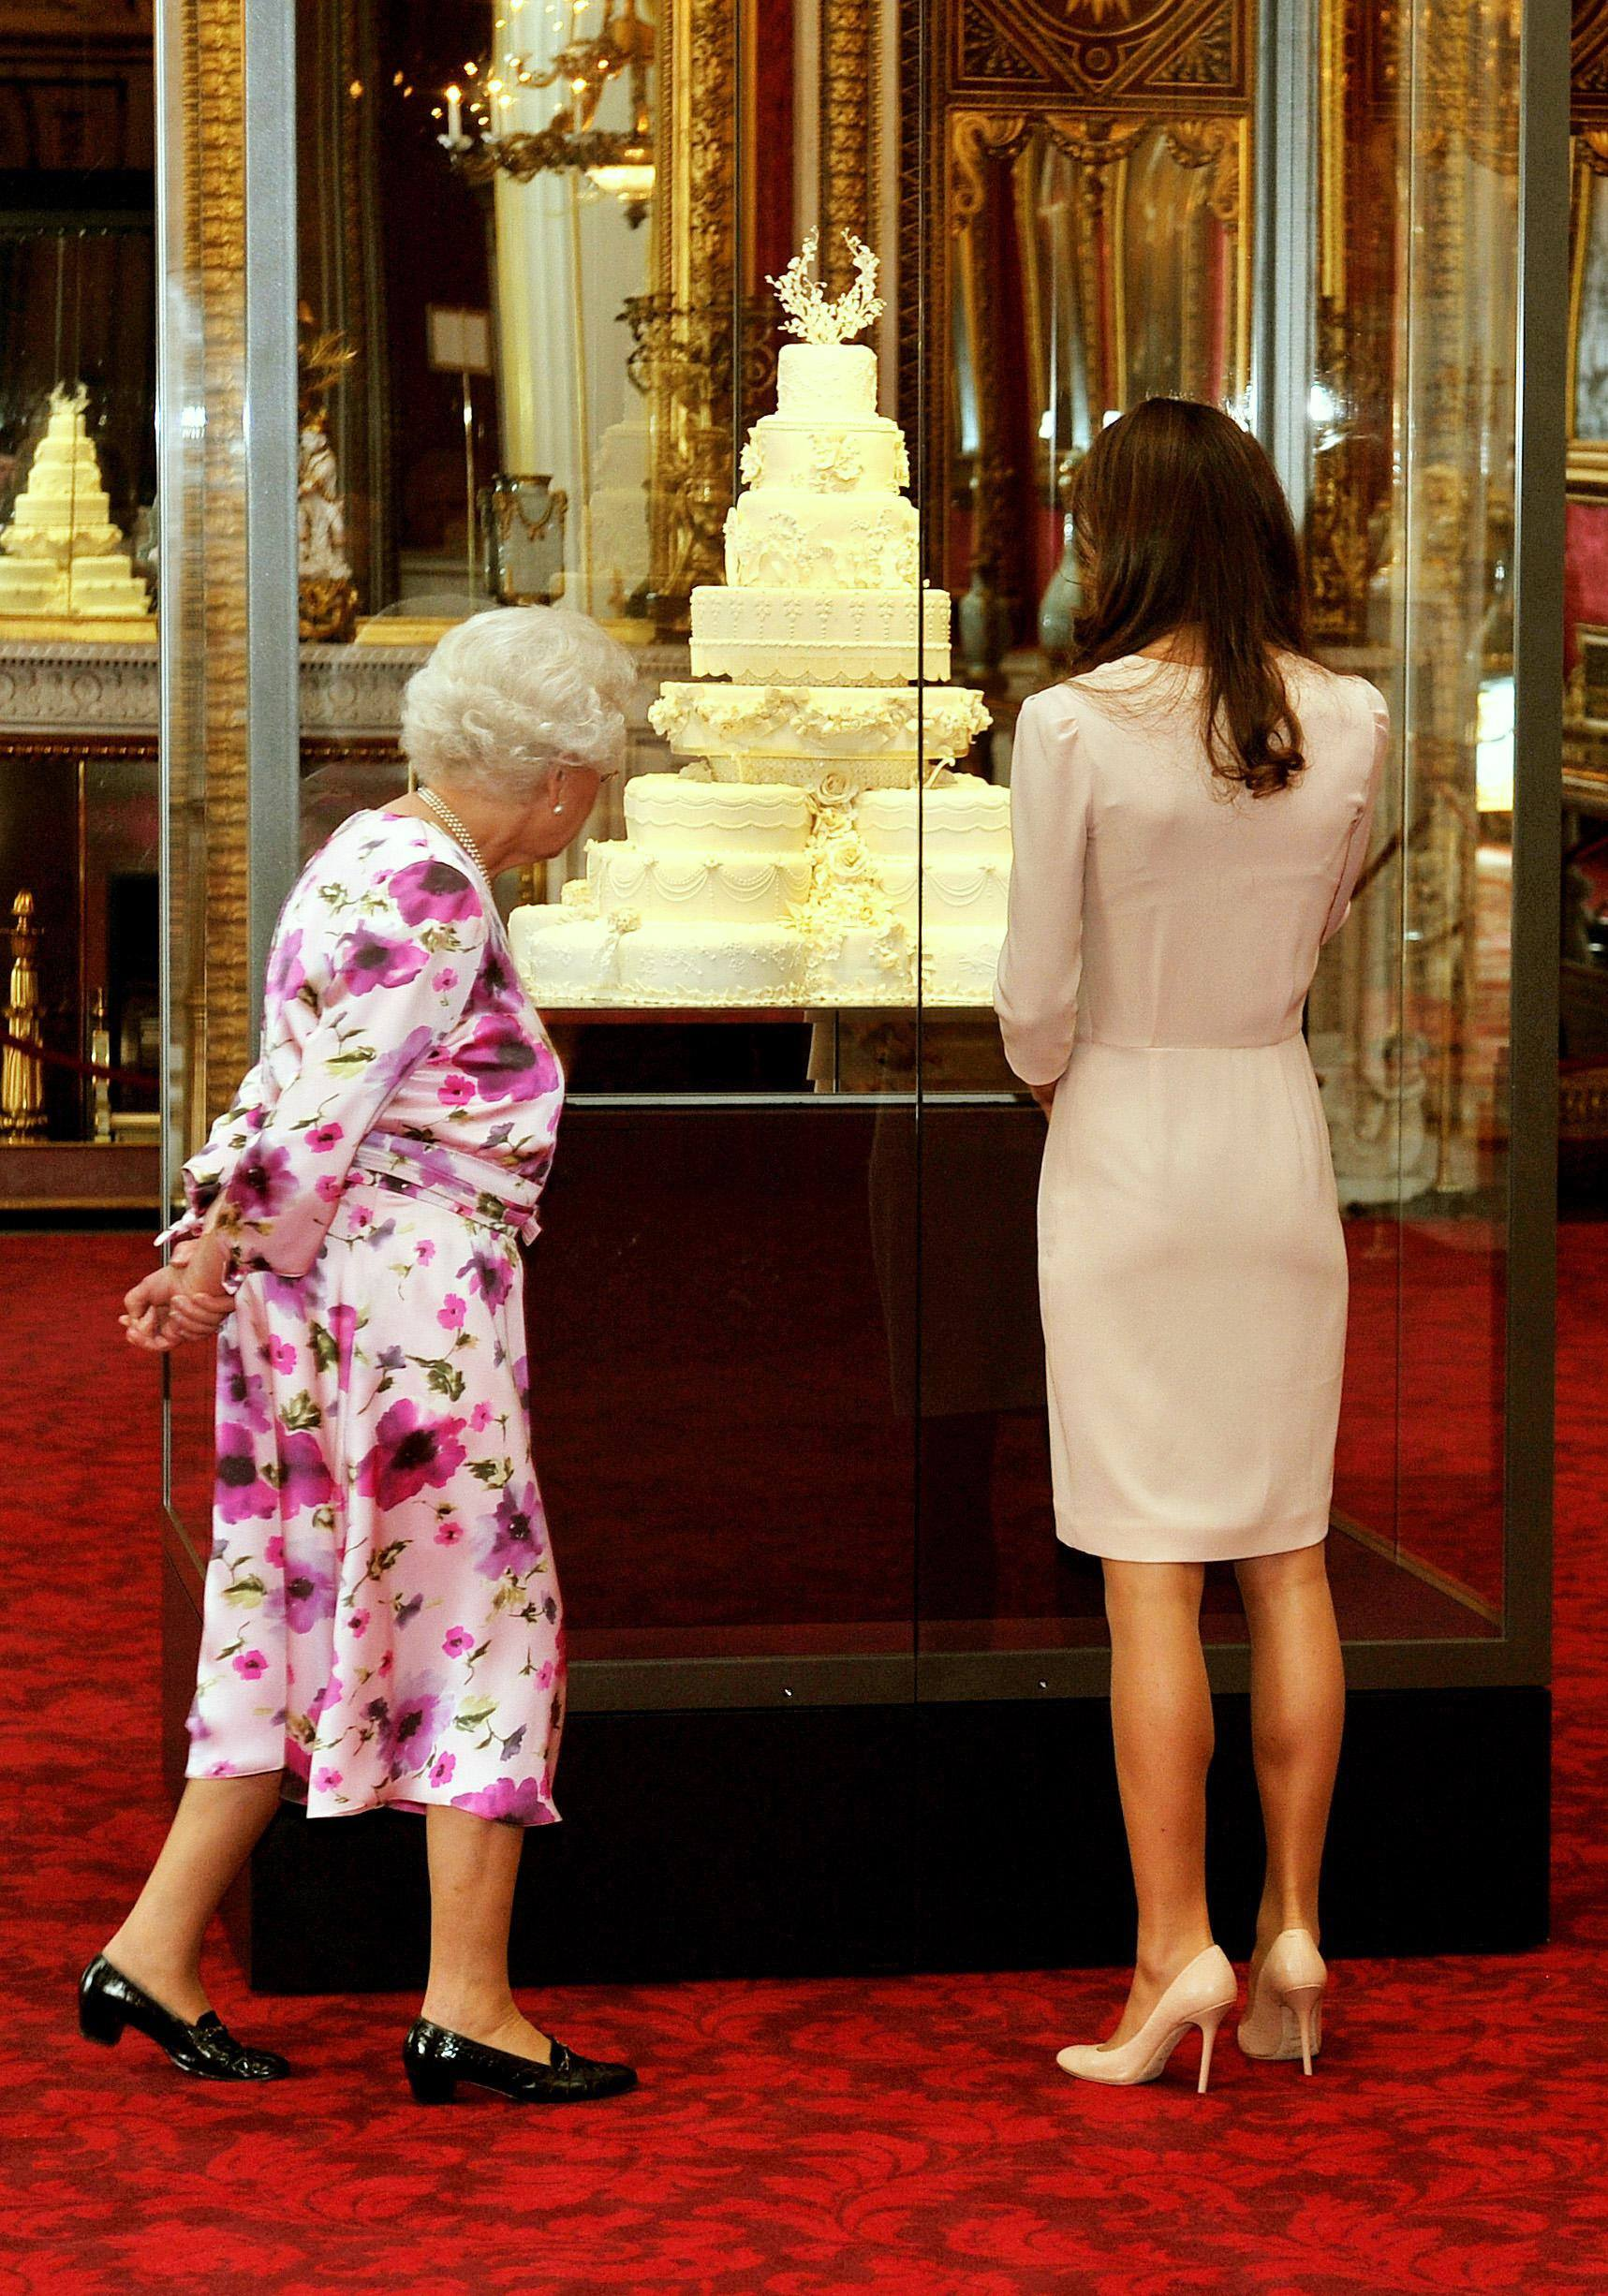 Britain's Queen Elizabeth II (L) and Kate Middleton look at wedding cake in a glass case